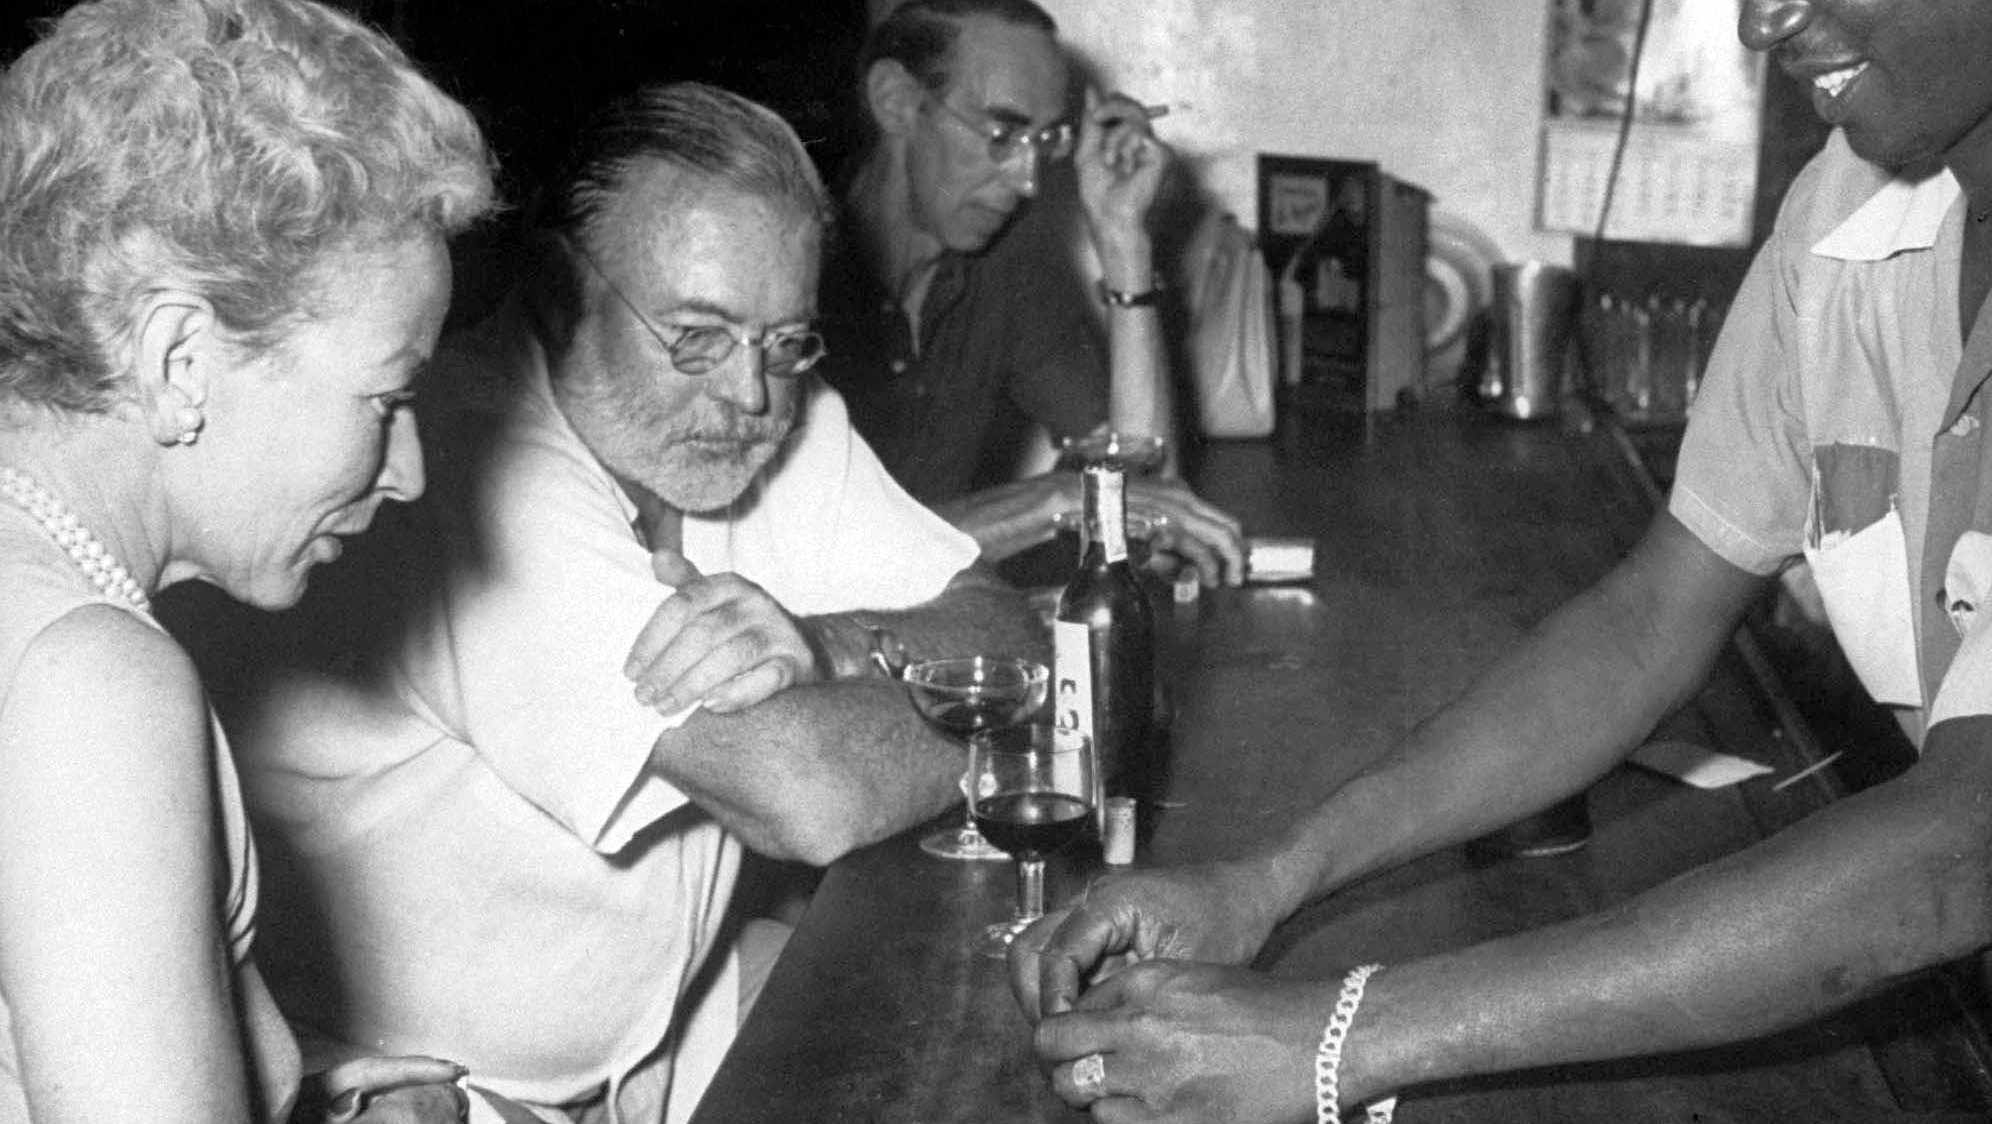 Ernest Hemingway with his wife Mary in Cuba.